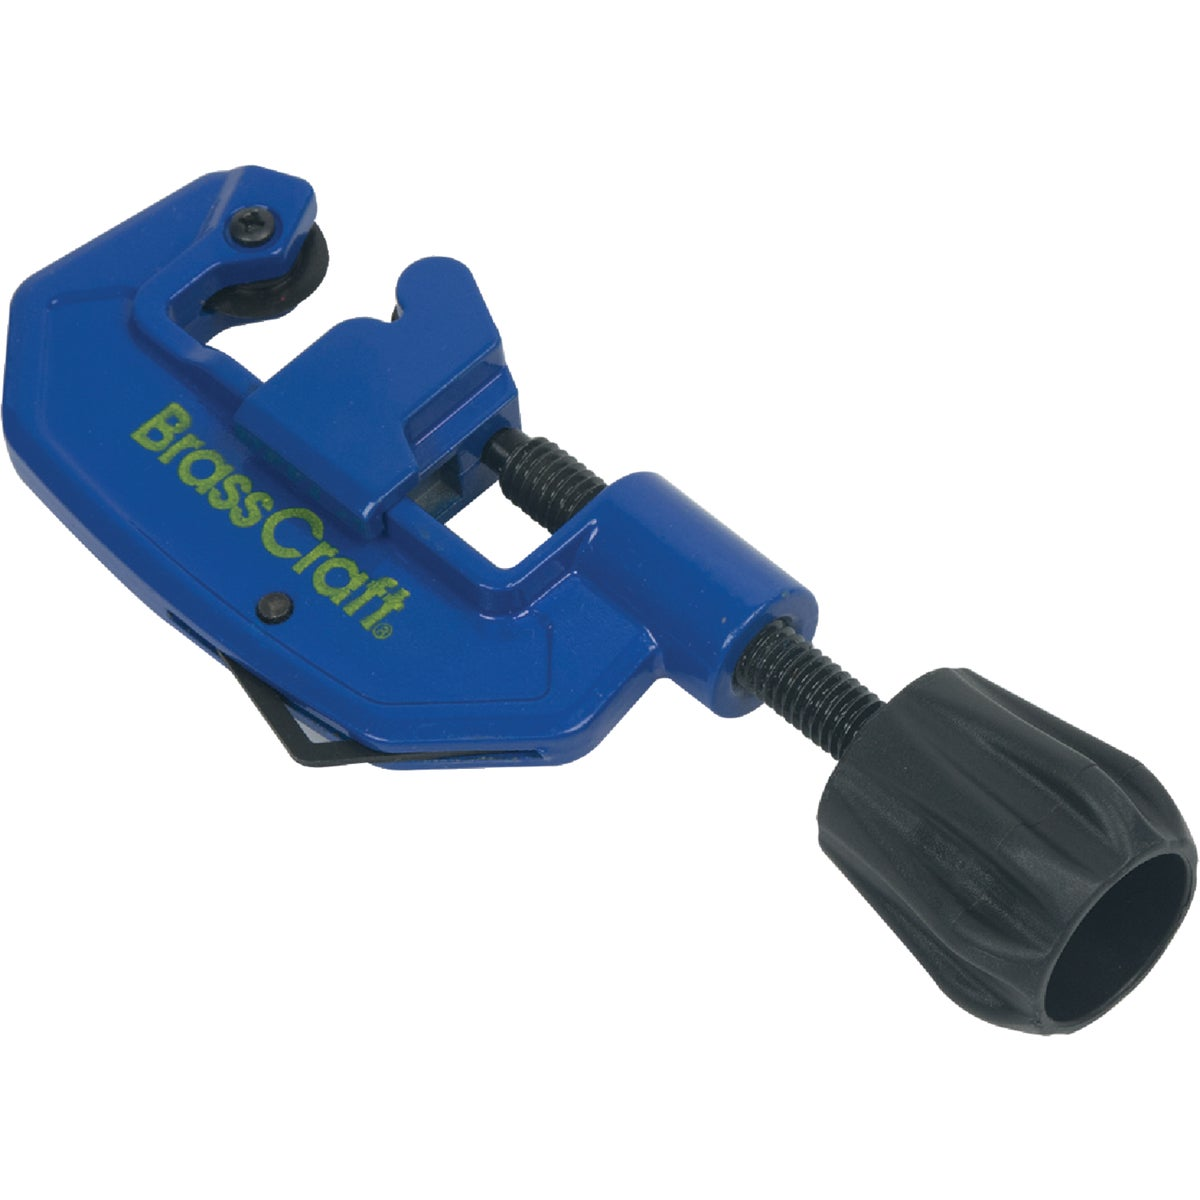 TUBING CUTTER - 125 by Gen Tools Mfg